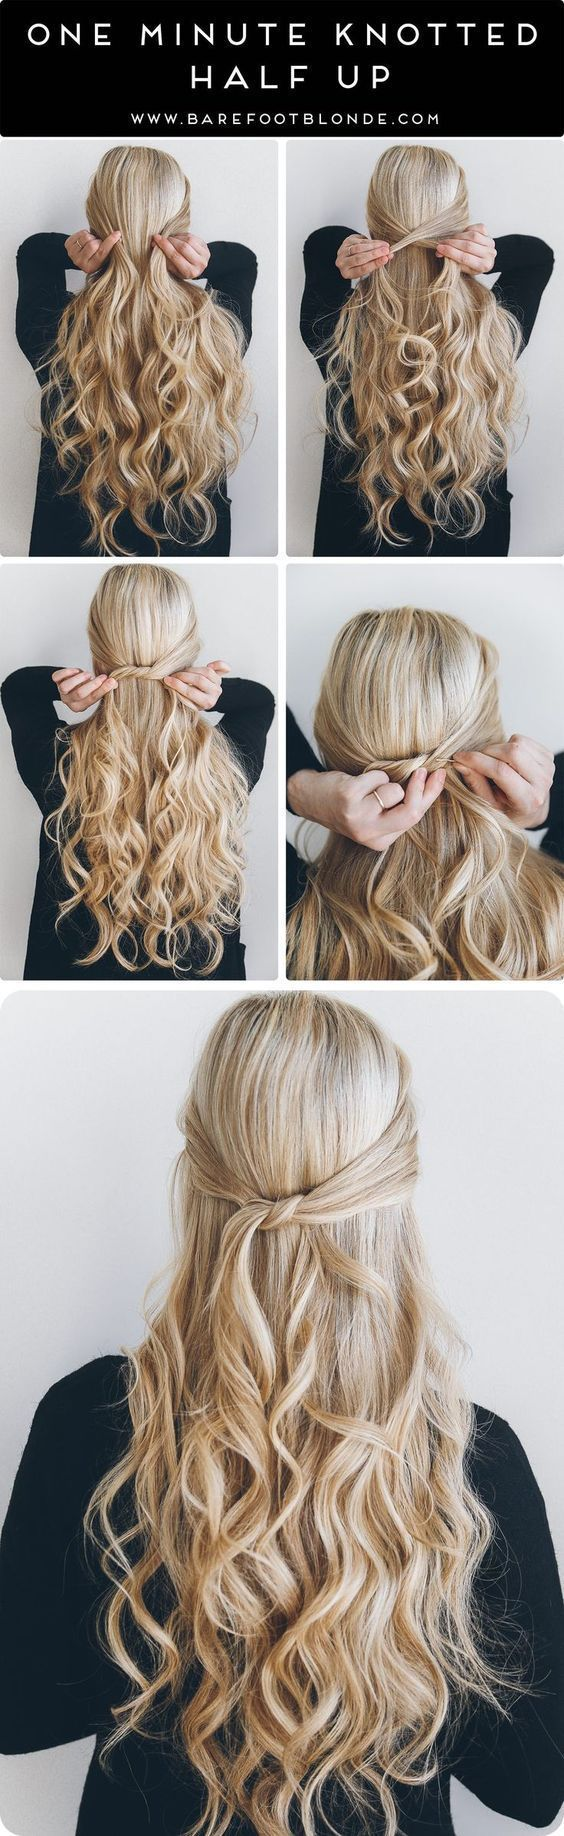 hair style best 25 popular hairstyles ideas on popular 8173